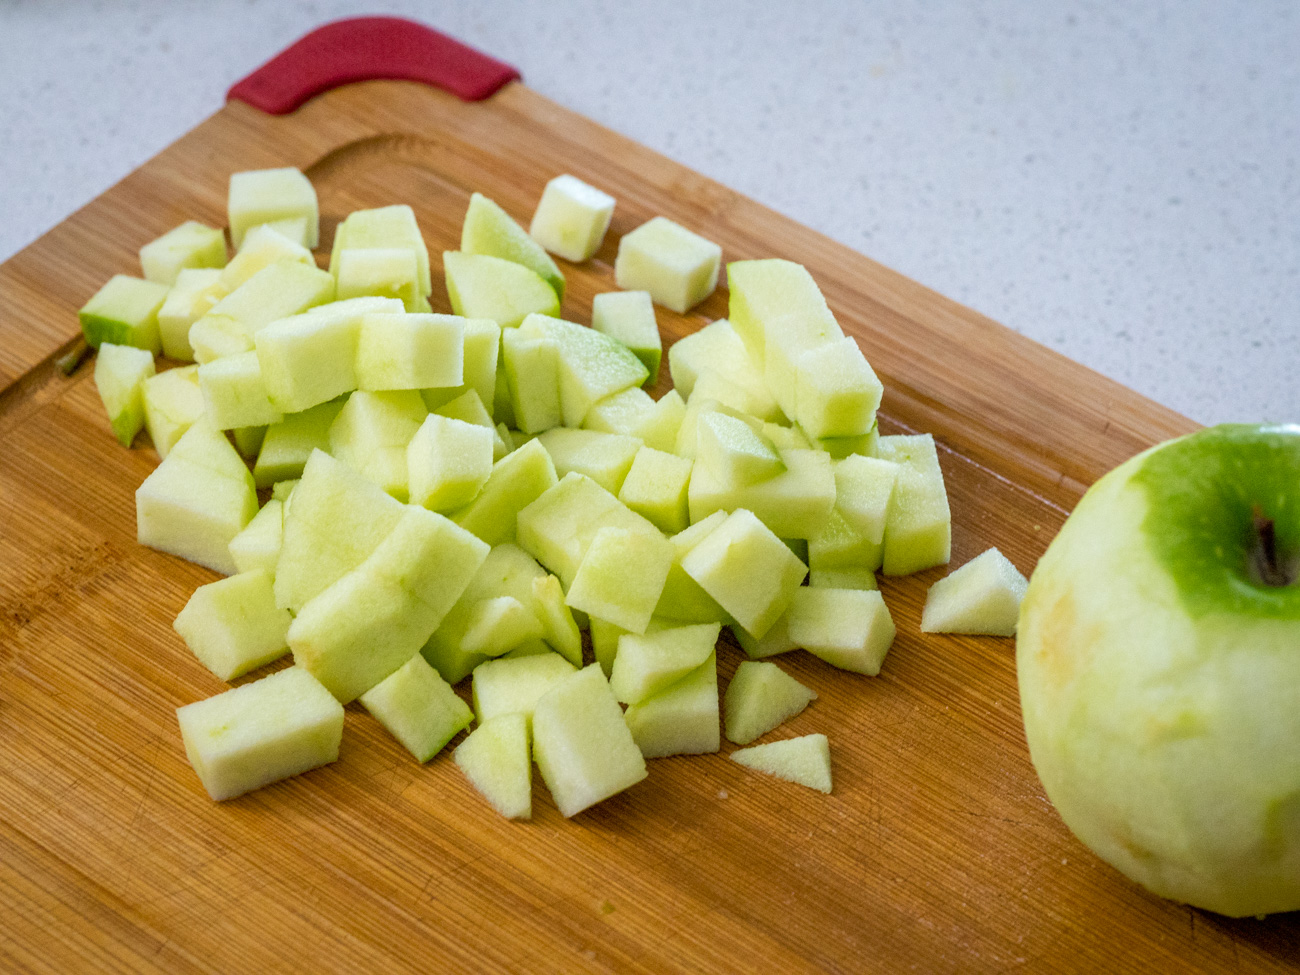 chopped and peeled Granny Smith apples